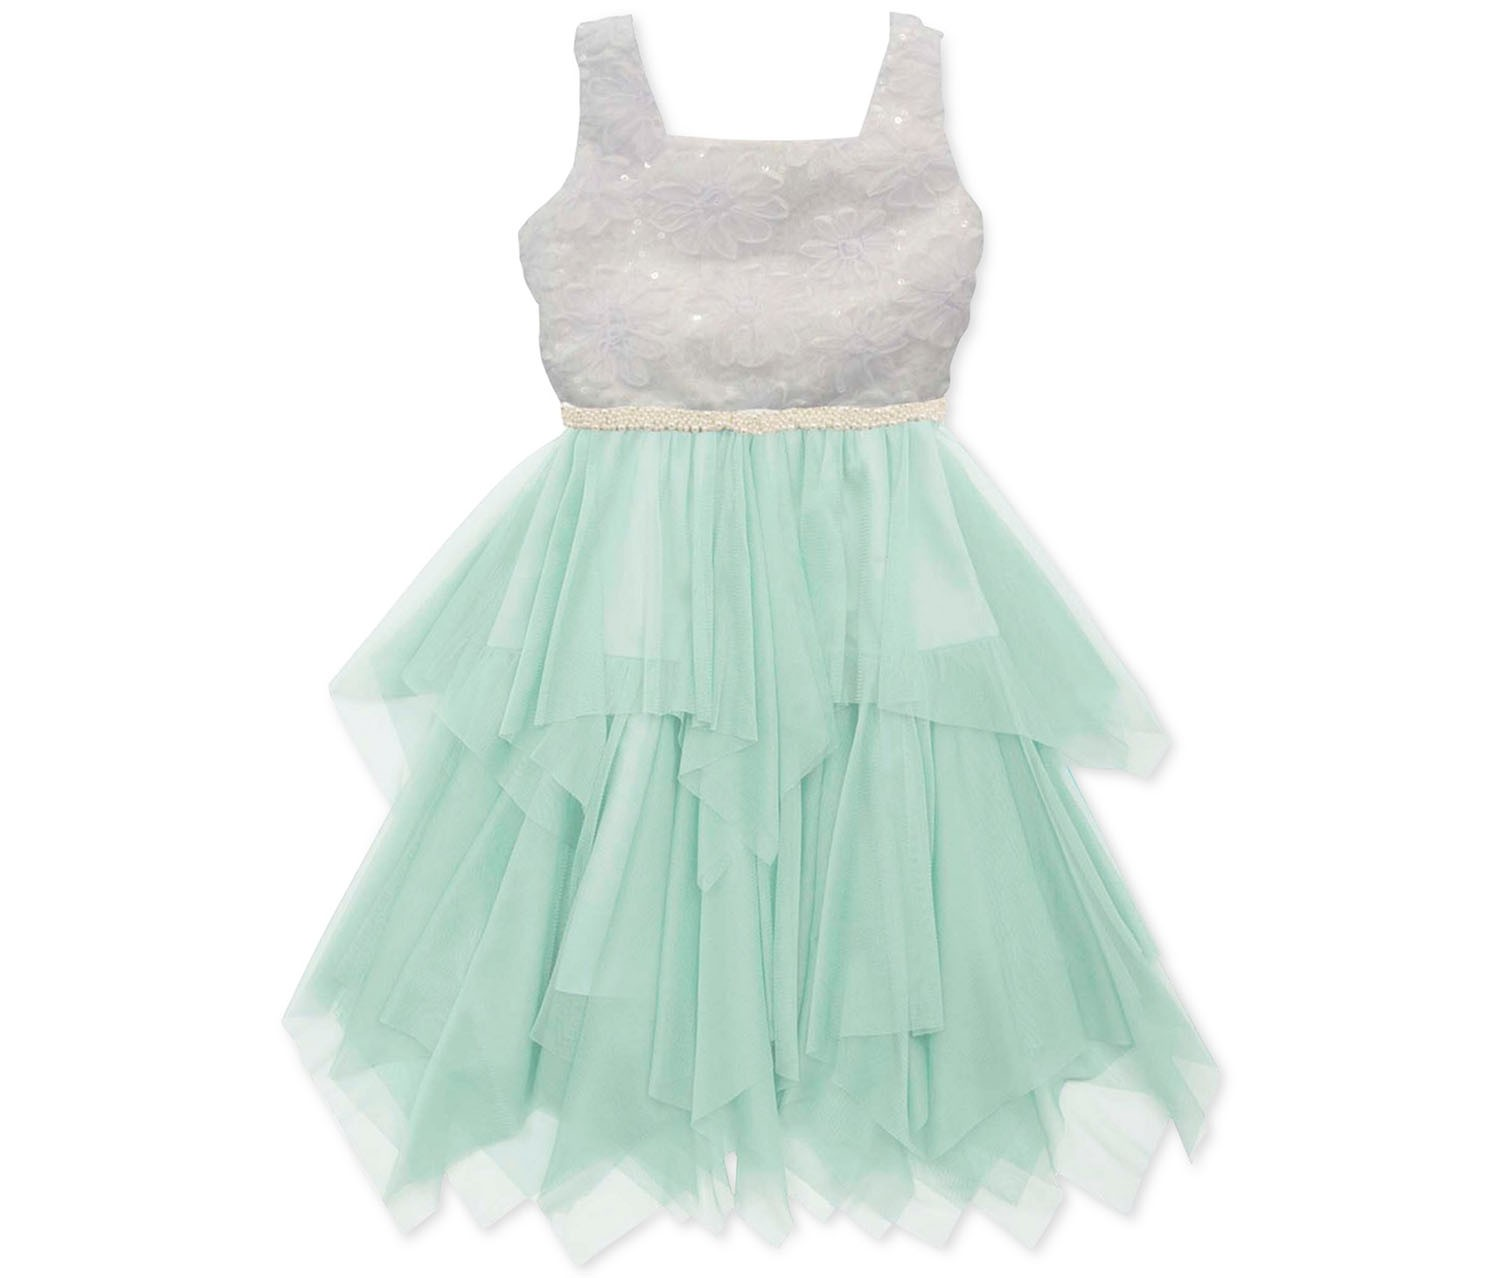 Rare Editions Girls Lace and Mesh Dress, White/Green